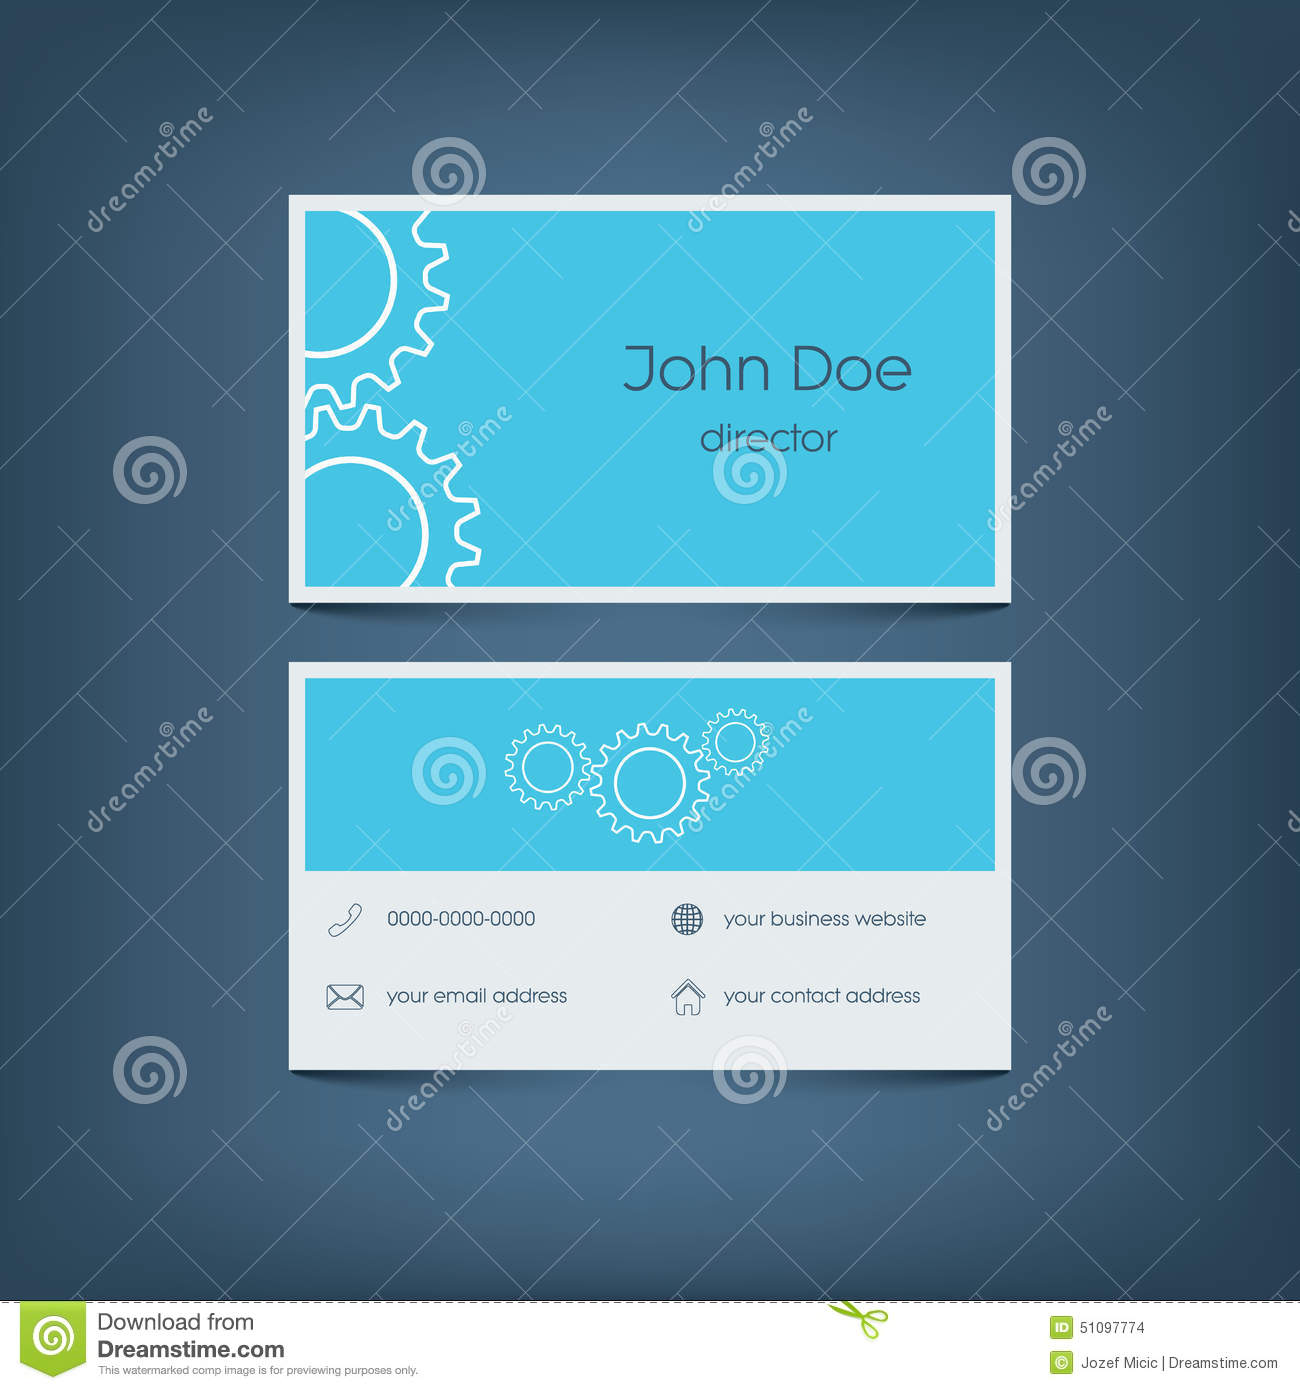 Modern flat design business card template graphic stock vector download modern flat design business card template graphic stock vector illustration of flat accmission